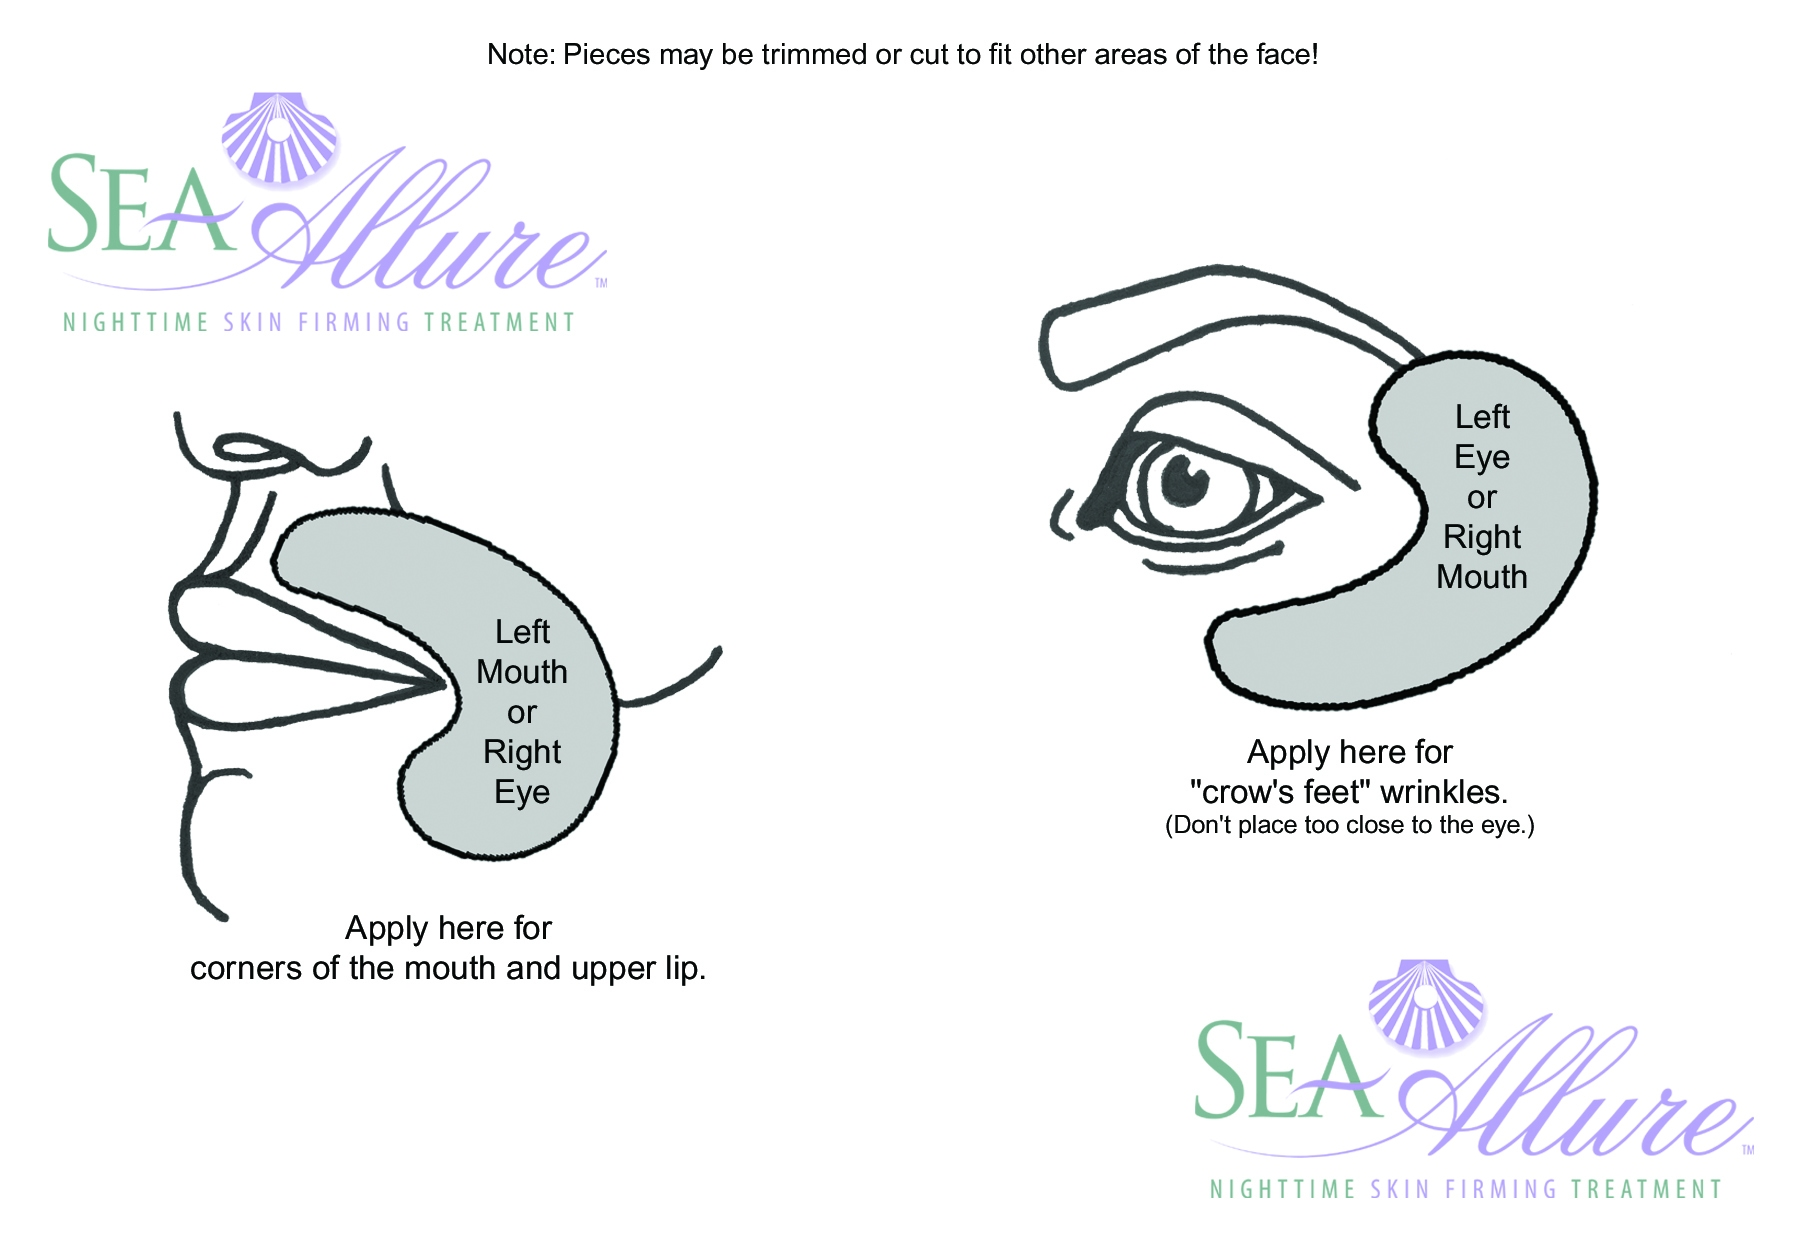 SeaAllure Nighttime Skin Firming Treatment